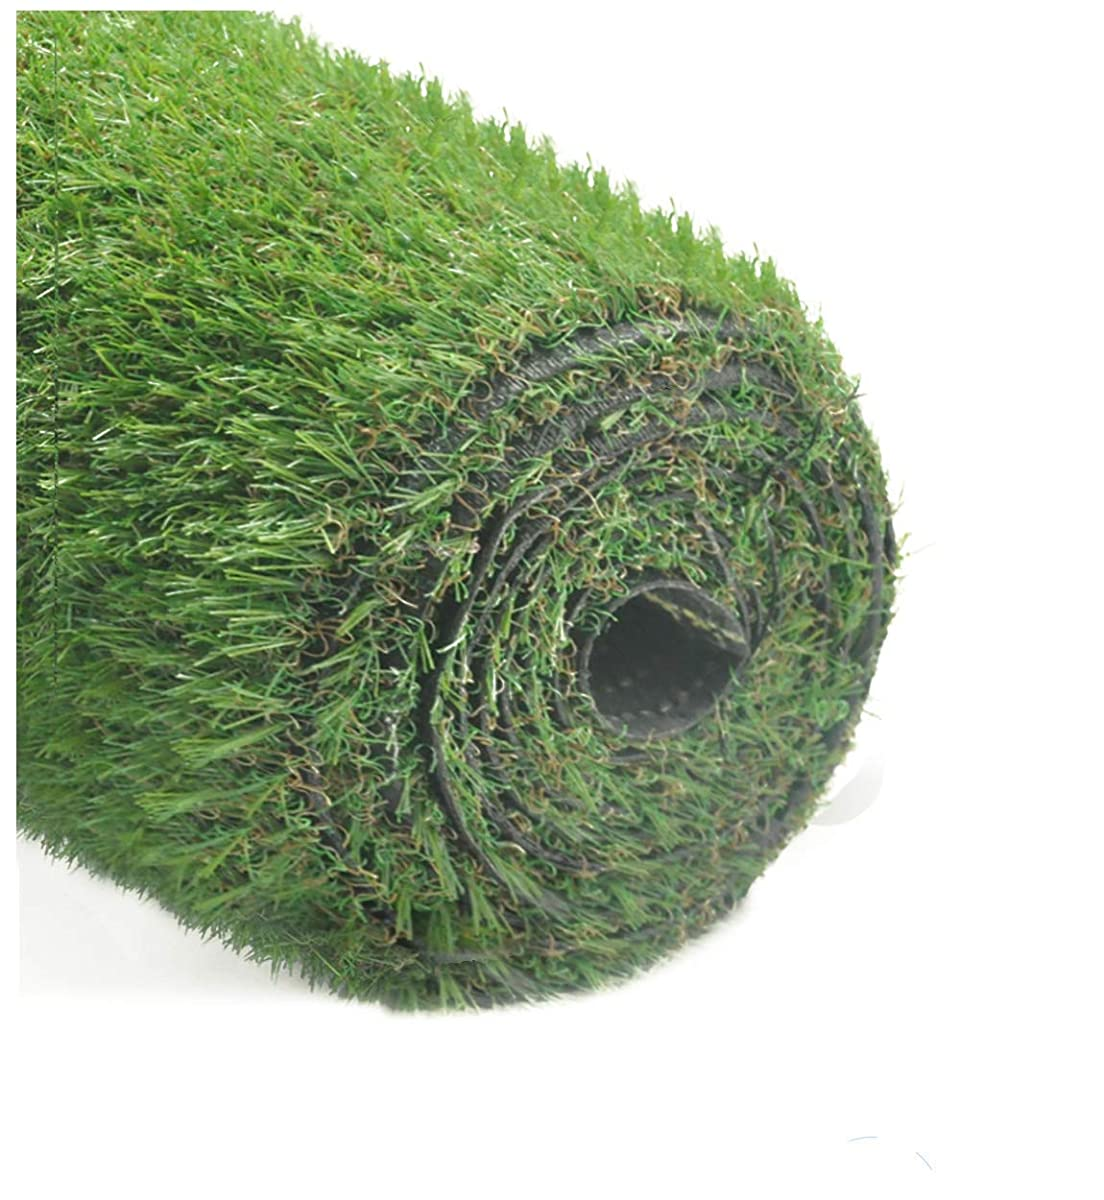 """GOLDEN MOON 6.5ftx10ft Series PE Indoor/Outdoor Green Decorative Synthetic Artificial Grass Turf Area Rug 1.4 Inch Pile Height, 6.5x10, 1.4"""""""